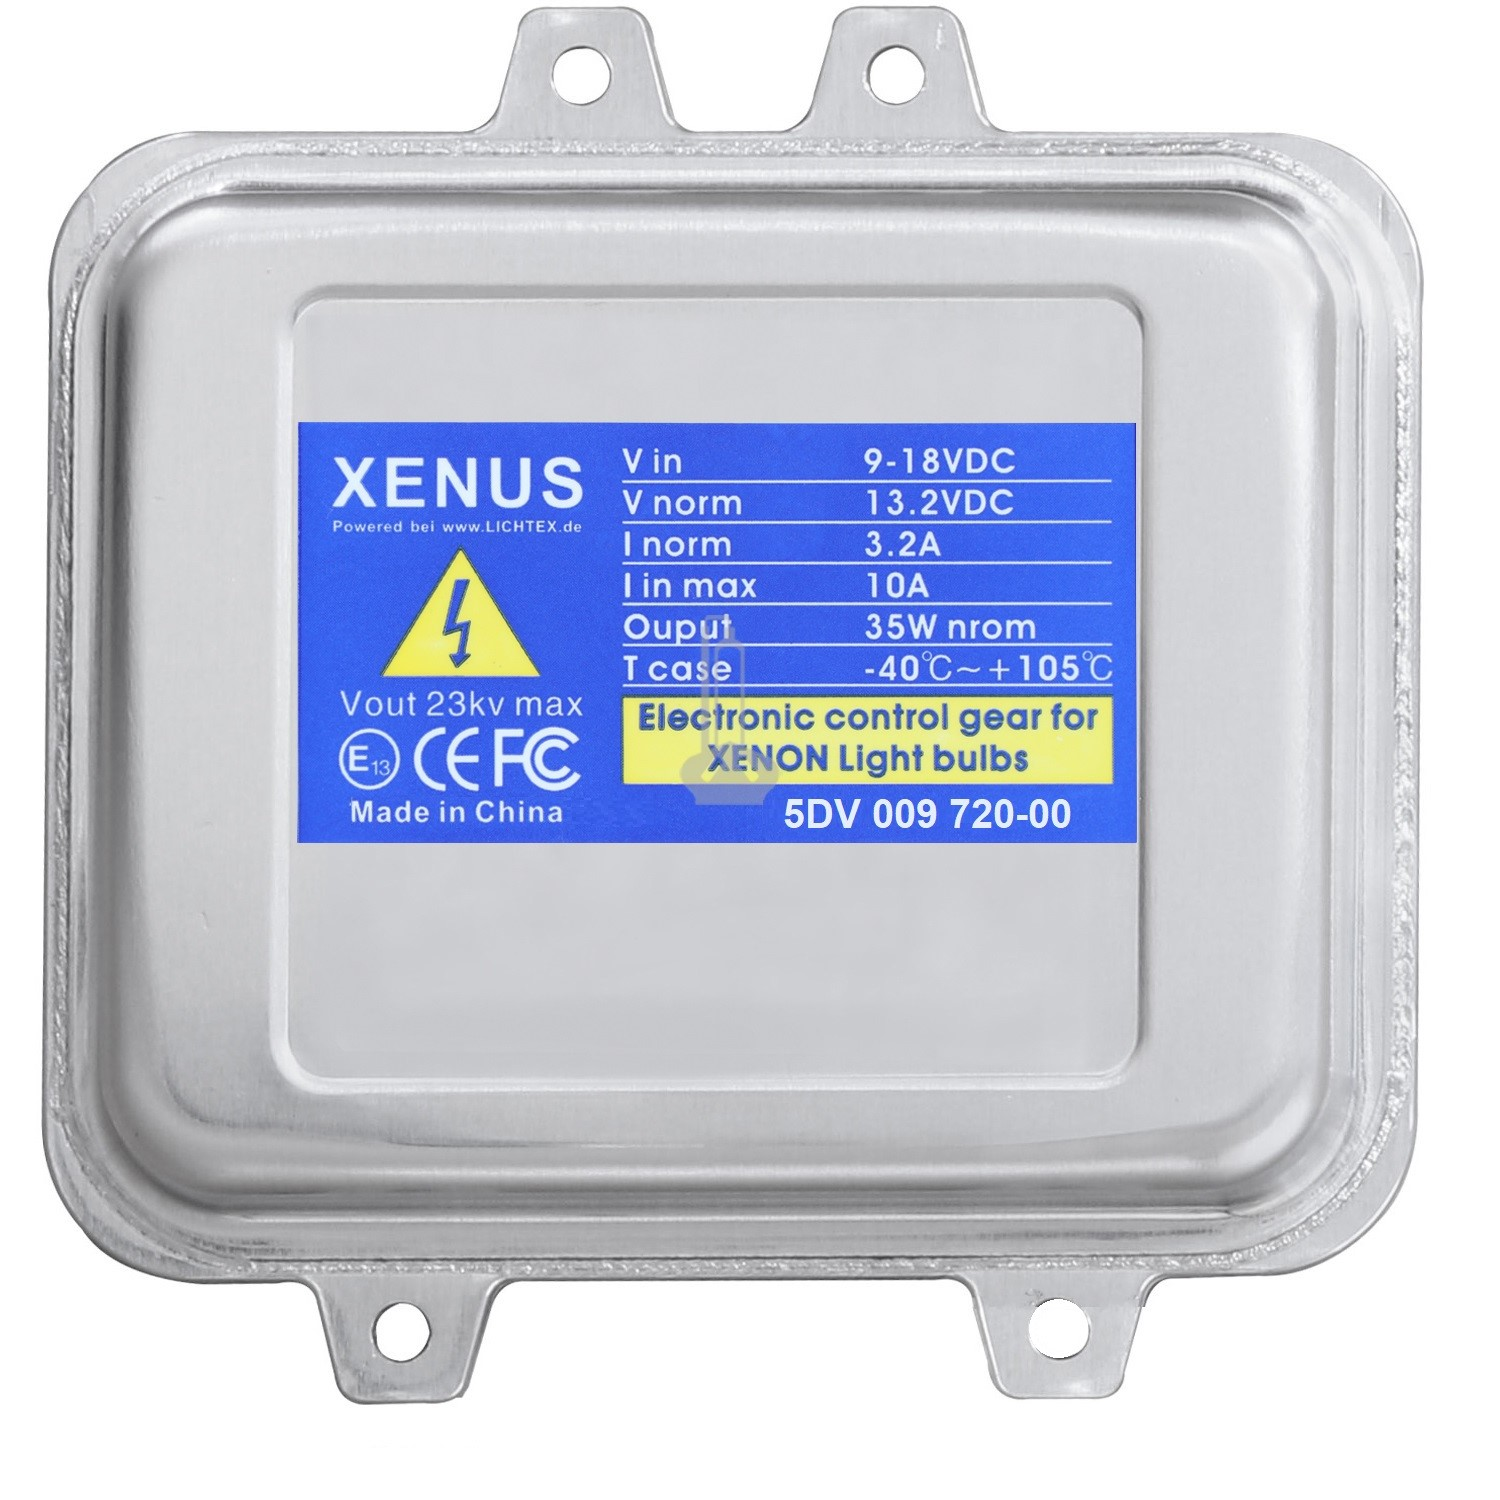 XENUS 5DV 009 720-00 Xenon Xenius Ballast 12V Headlight Control Unit, Replacement for Hella